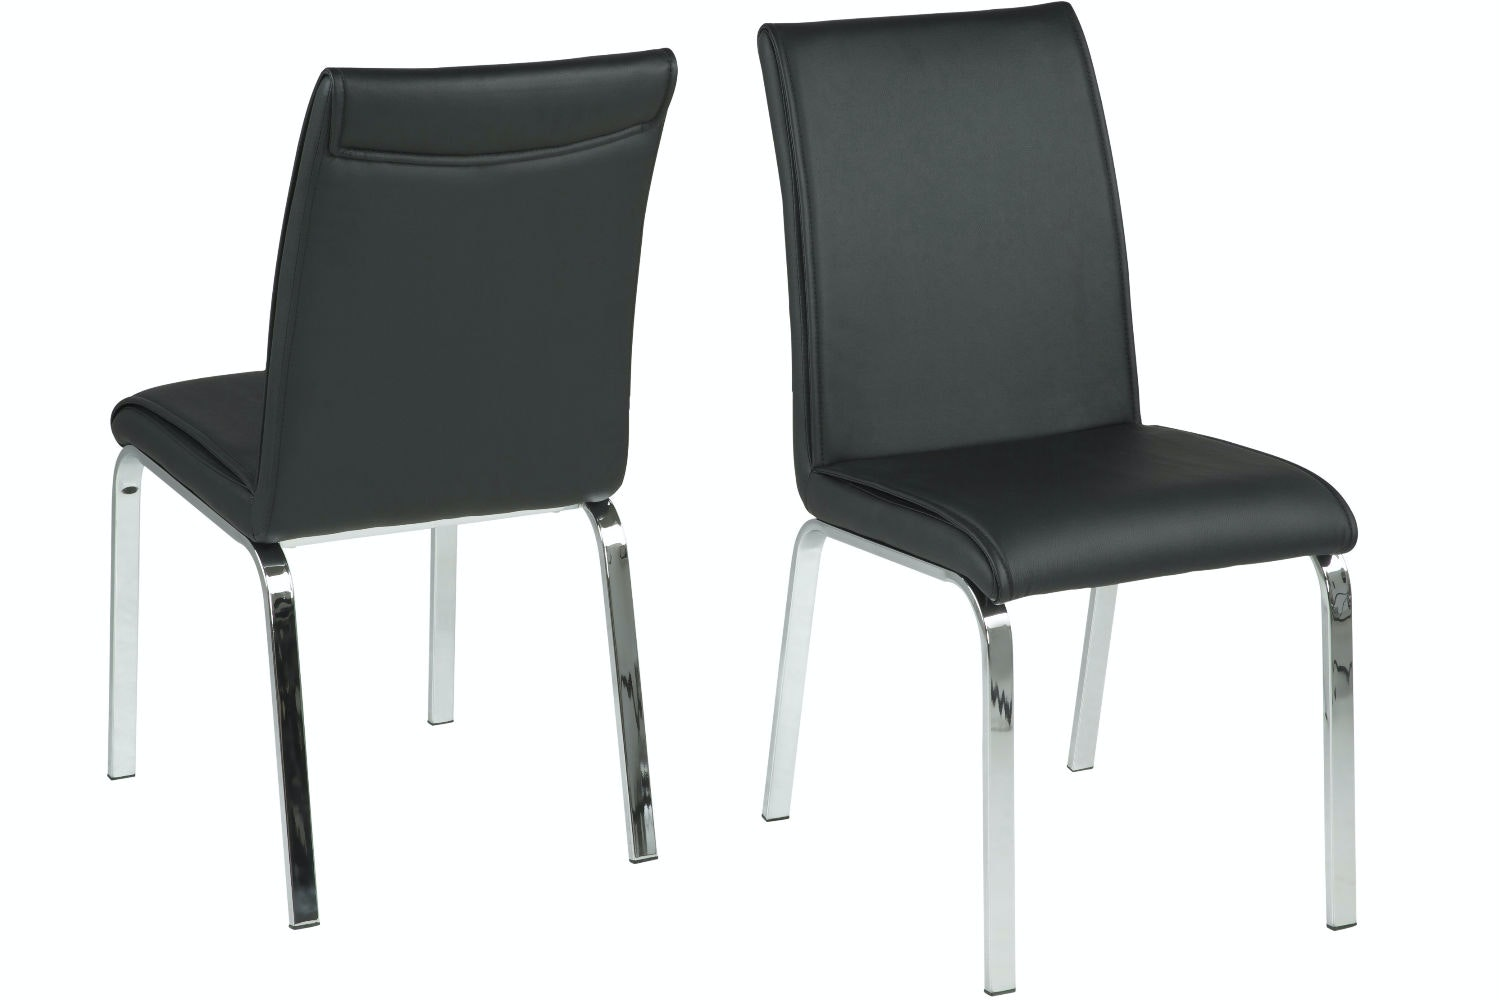 Lennox 7 Piece Dining Set | Leonora Dining Chairs Black